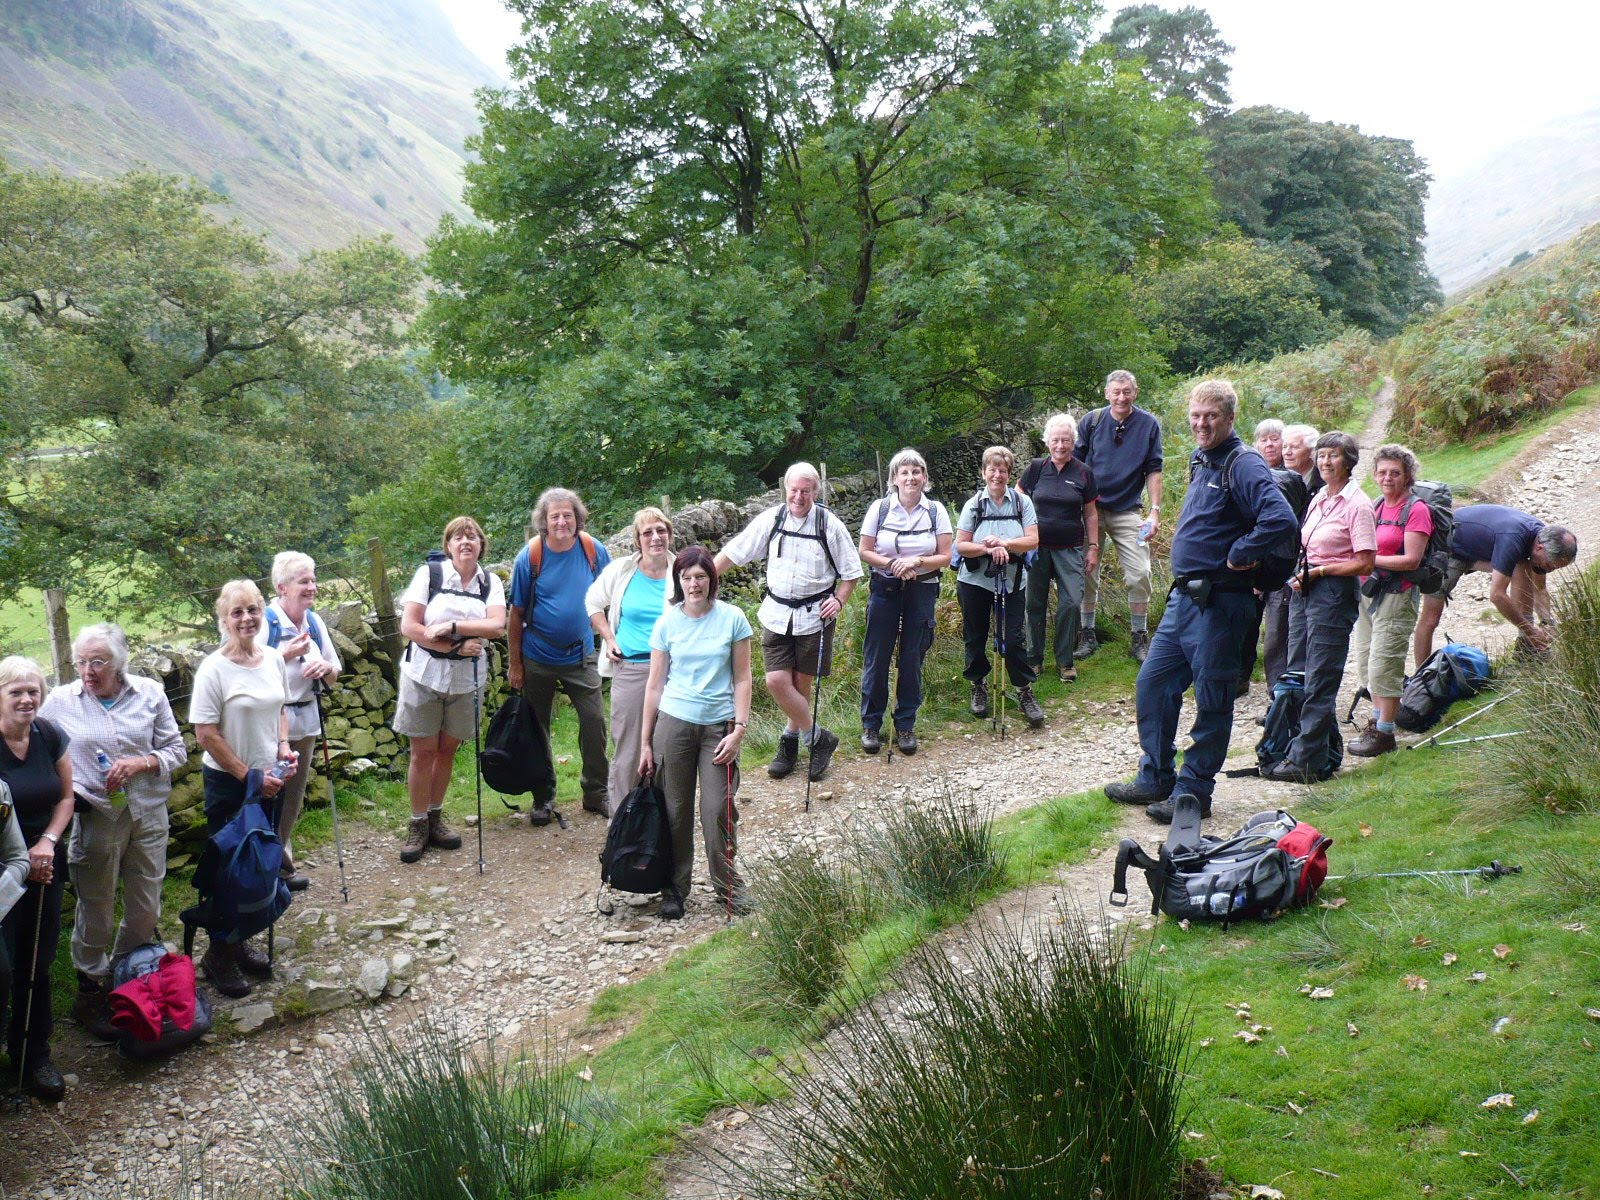 Hartsop hall cottages 171 walking holiday cottages walking - Members Decide Which Walk To Take